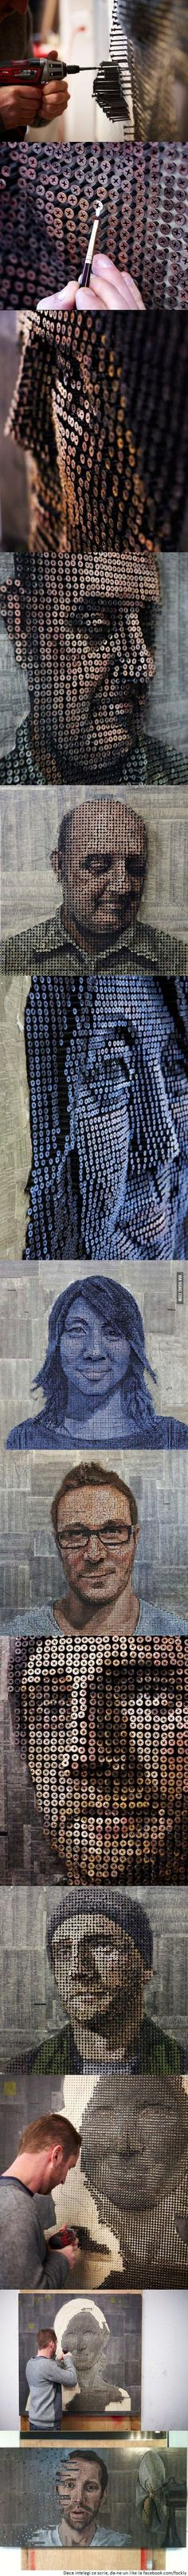 Nailed it!  Amazing 3D portraits made out of screws by Andrew Myers.